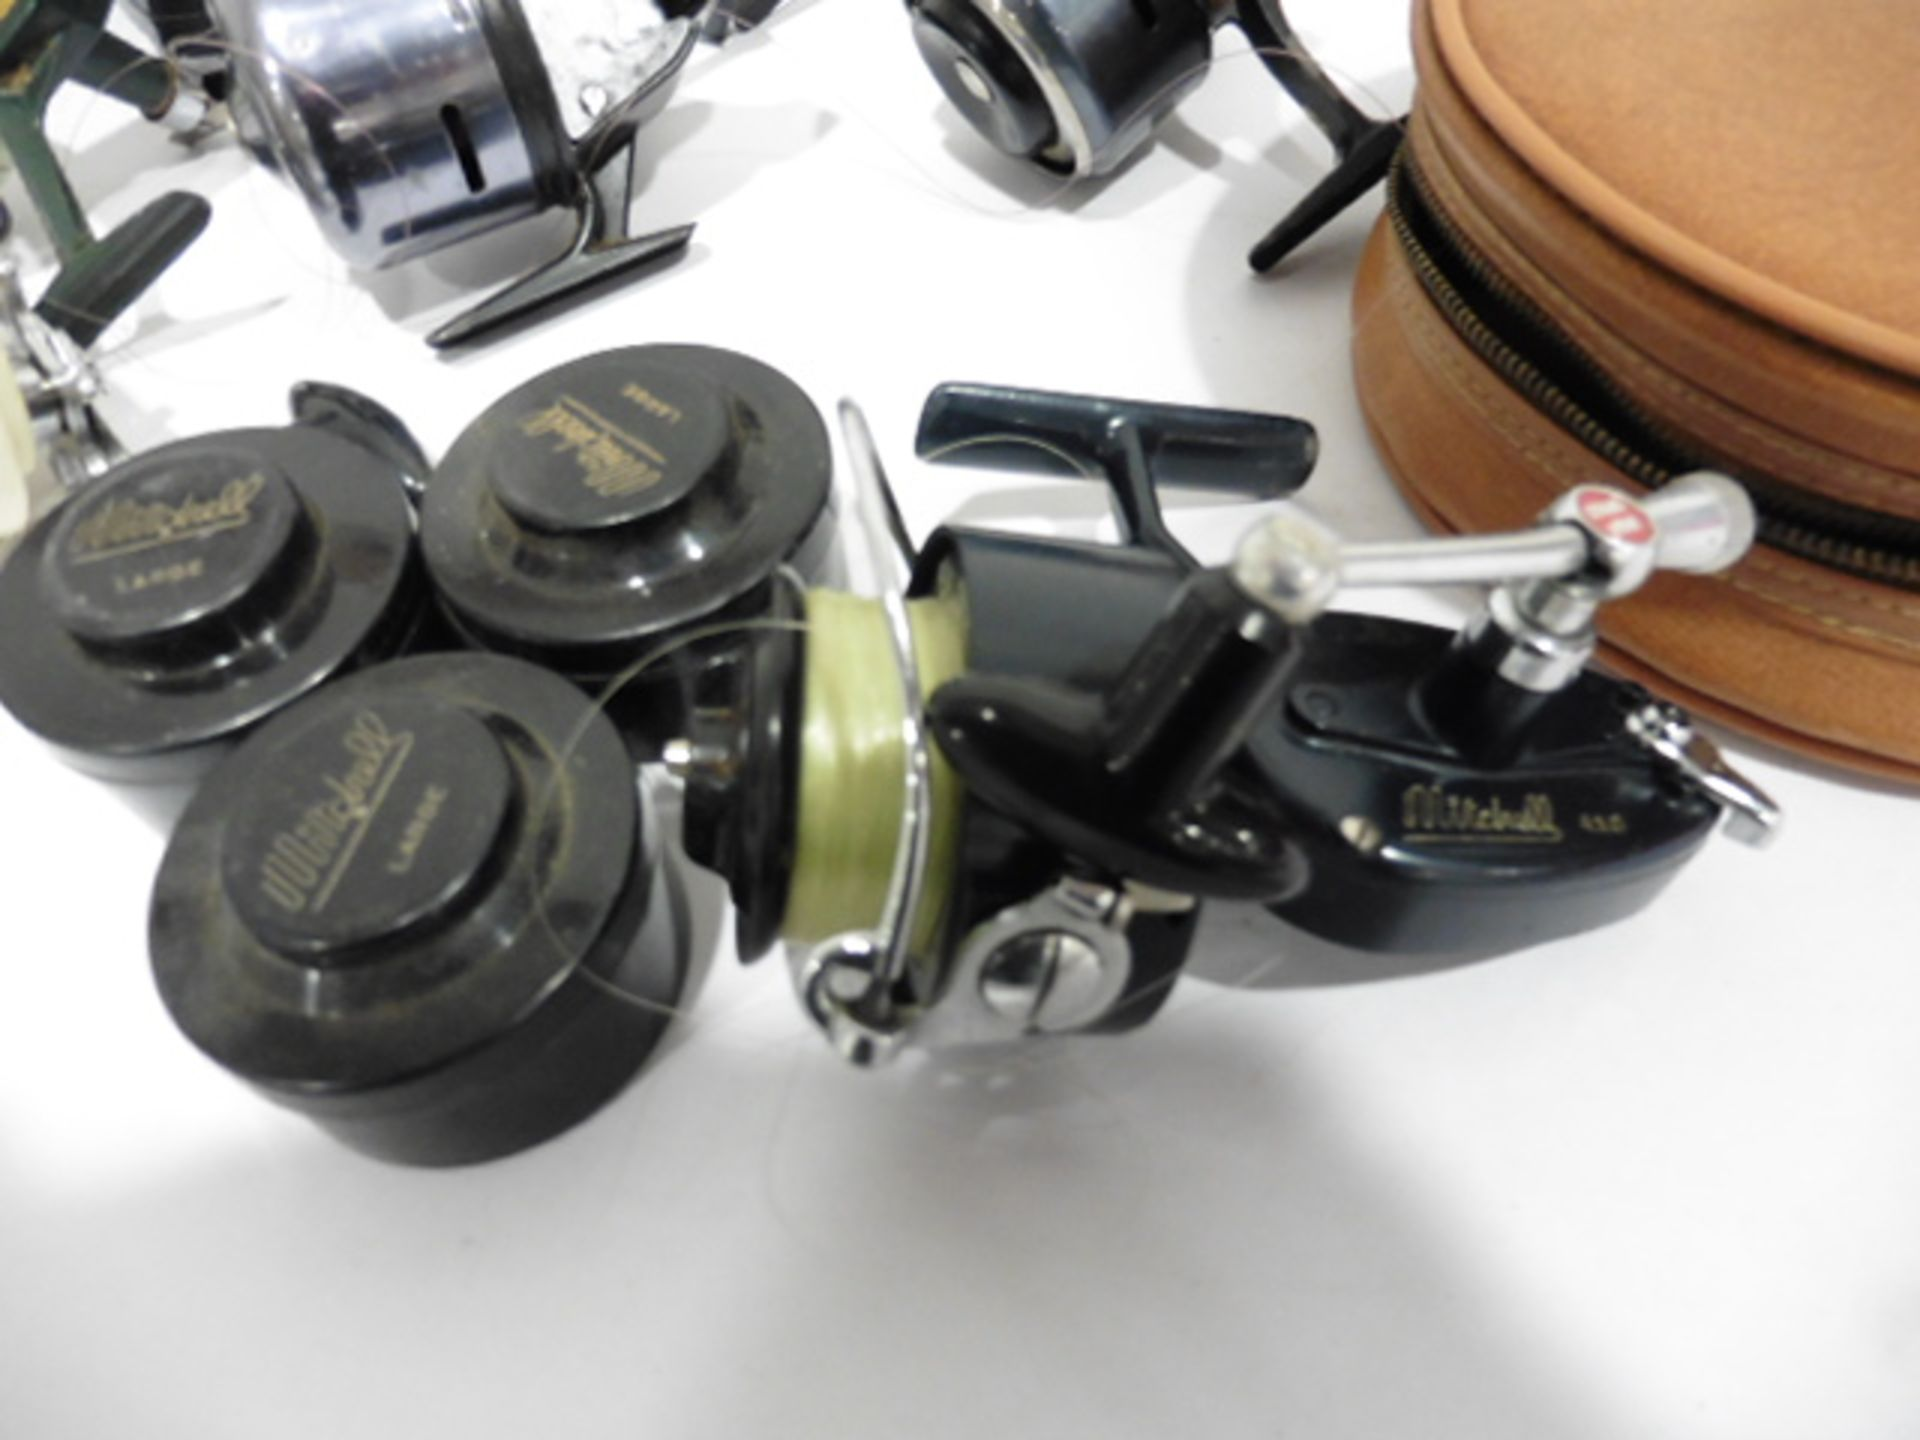 7 vintage reels including Garcia Mitchell 600 multipiler, 2 Abu 506, Mitchell 410 plus spare spools, - Image 5 of 6